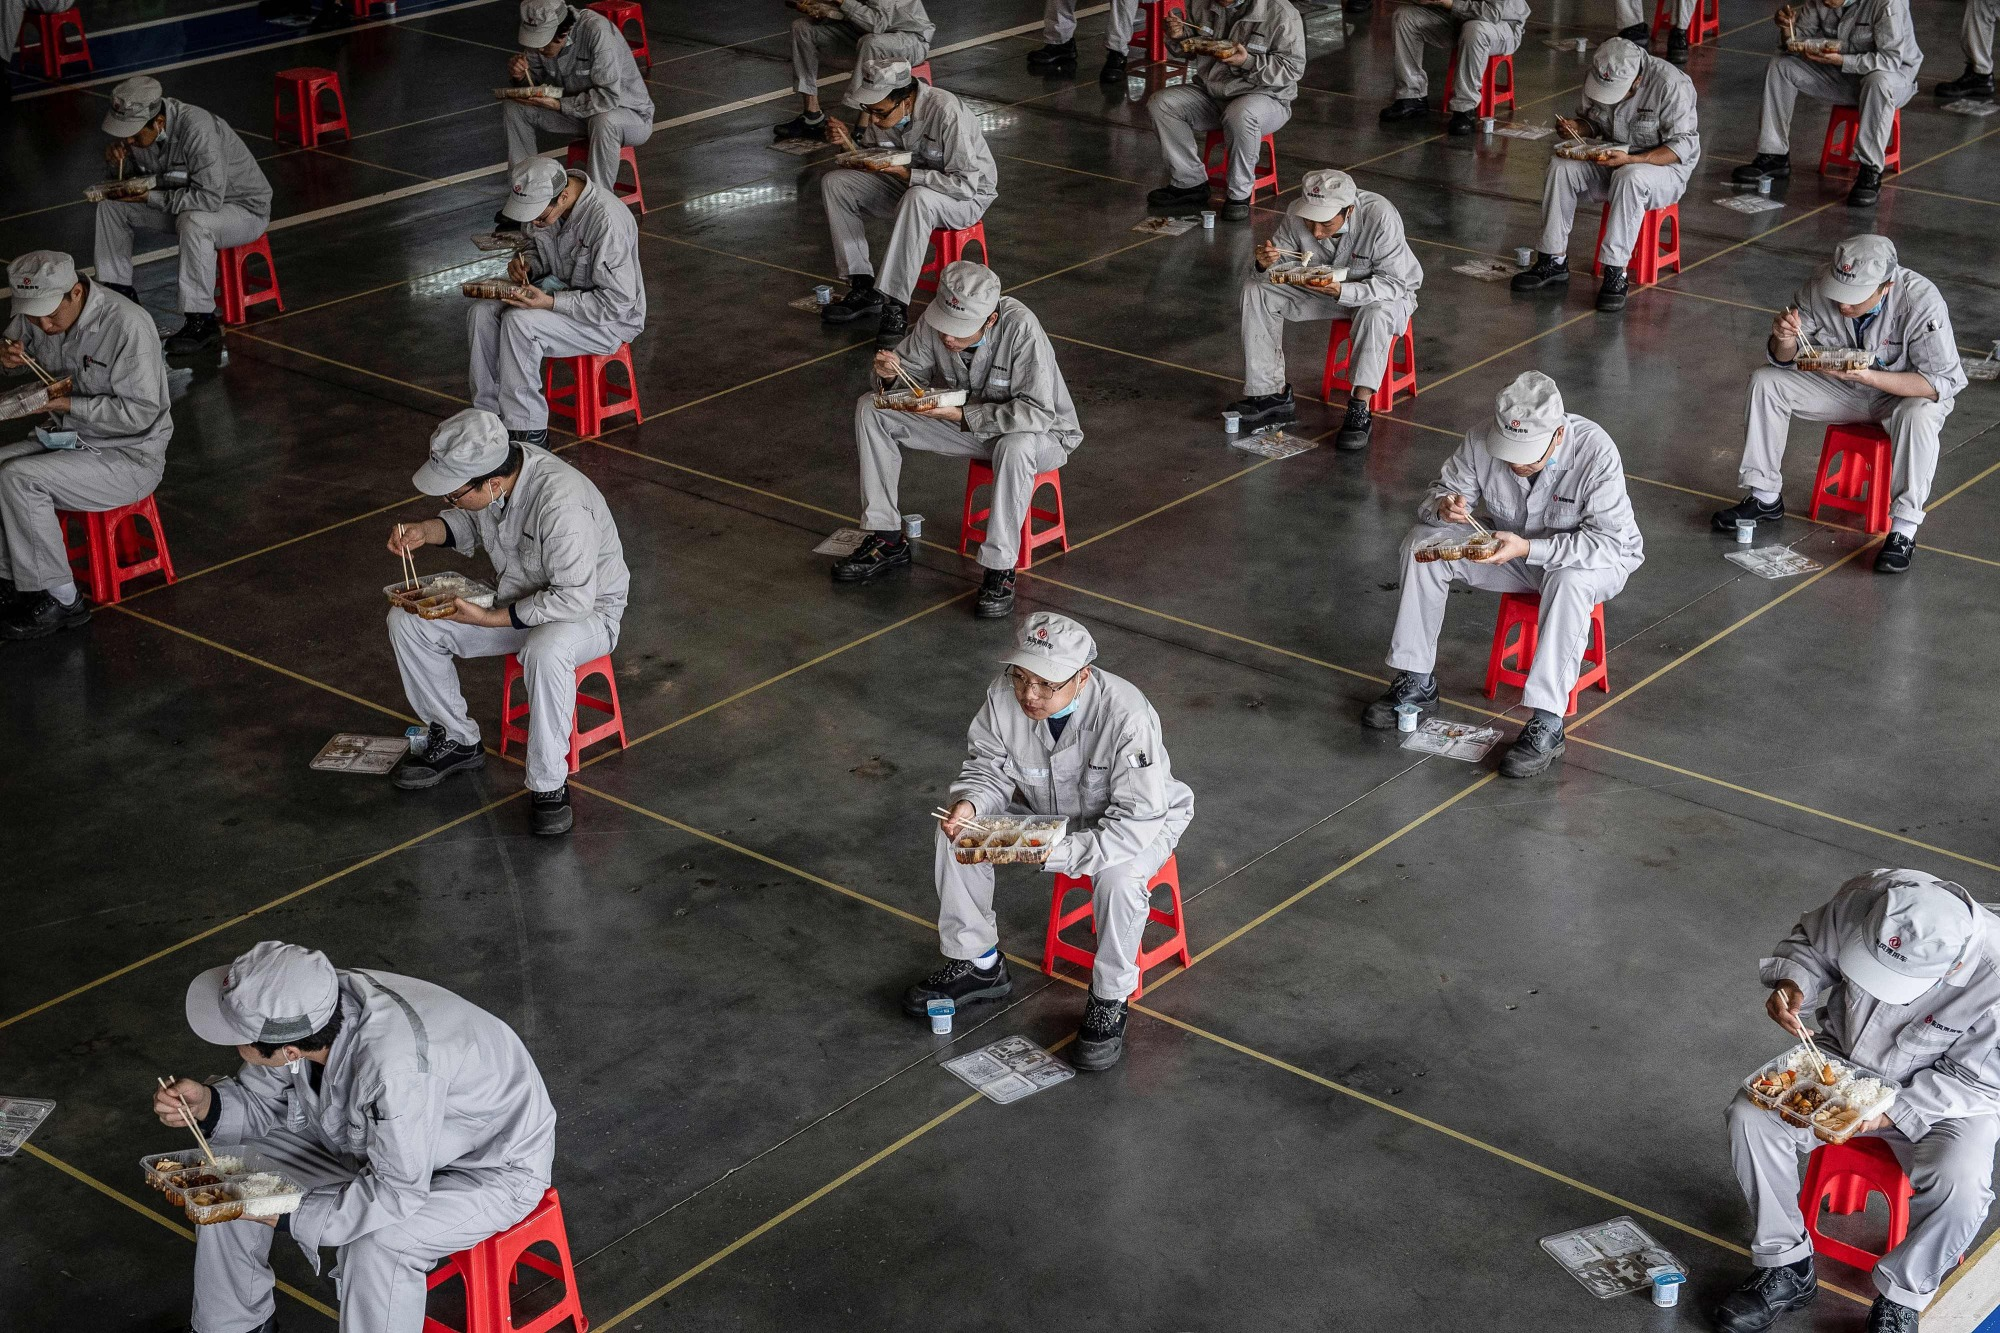 Employees eat during lunch break at a Dongfeng Honda auto plant in Wuhan, in China's central Hubei province, on Monday. | AFP-JIJI